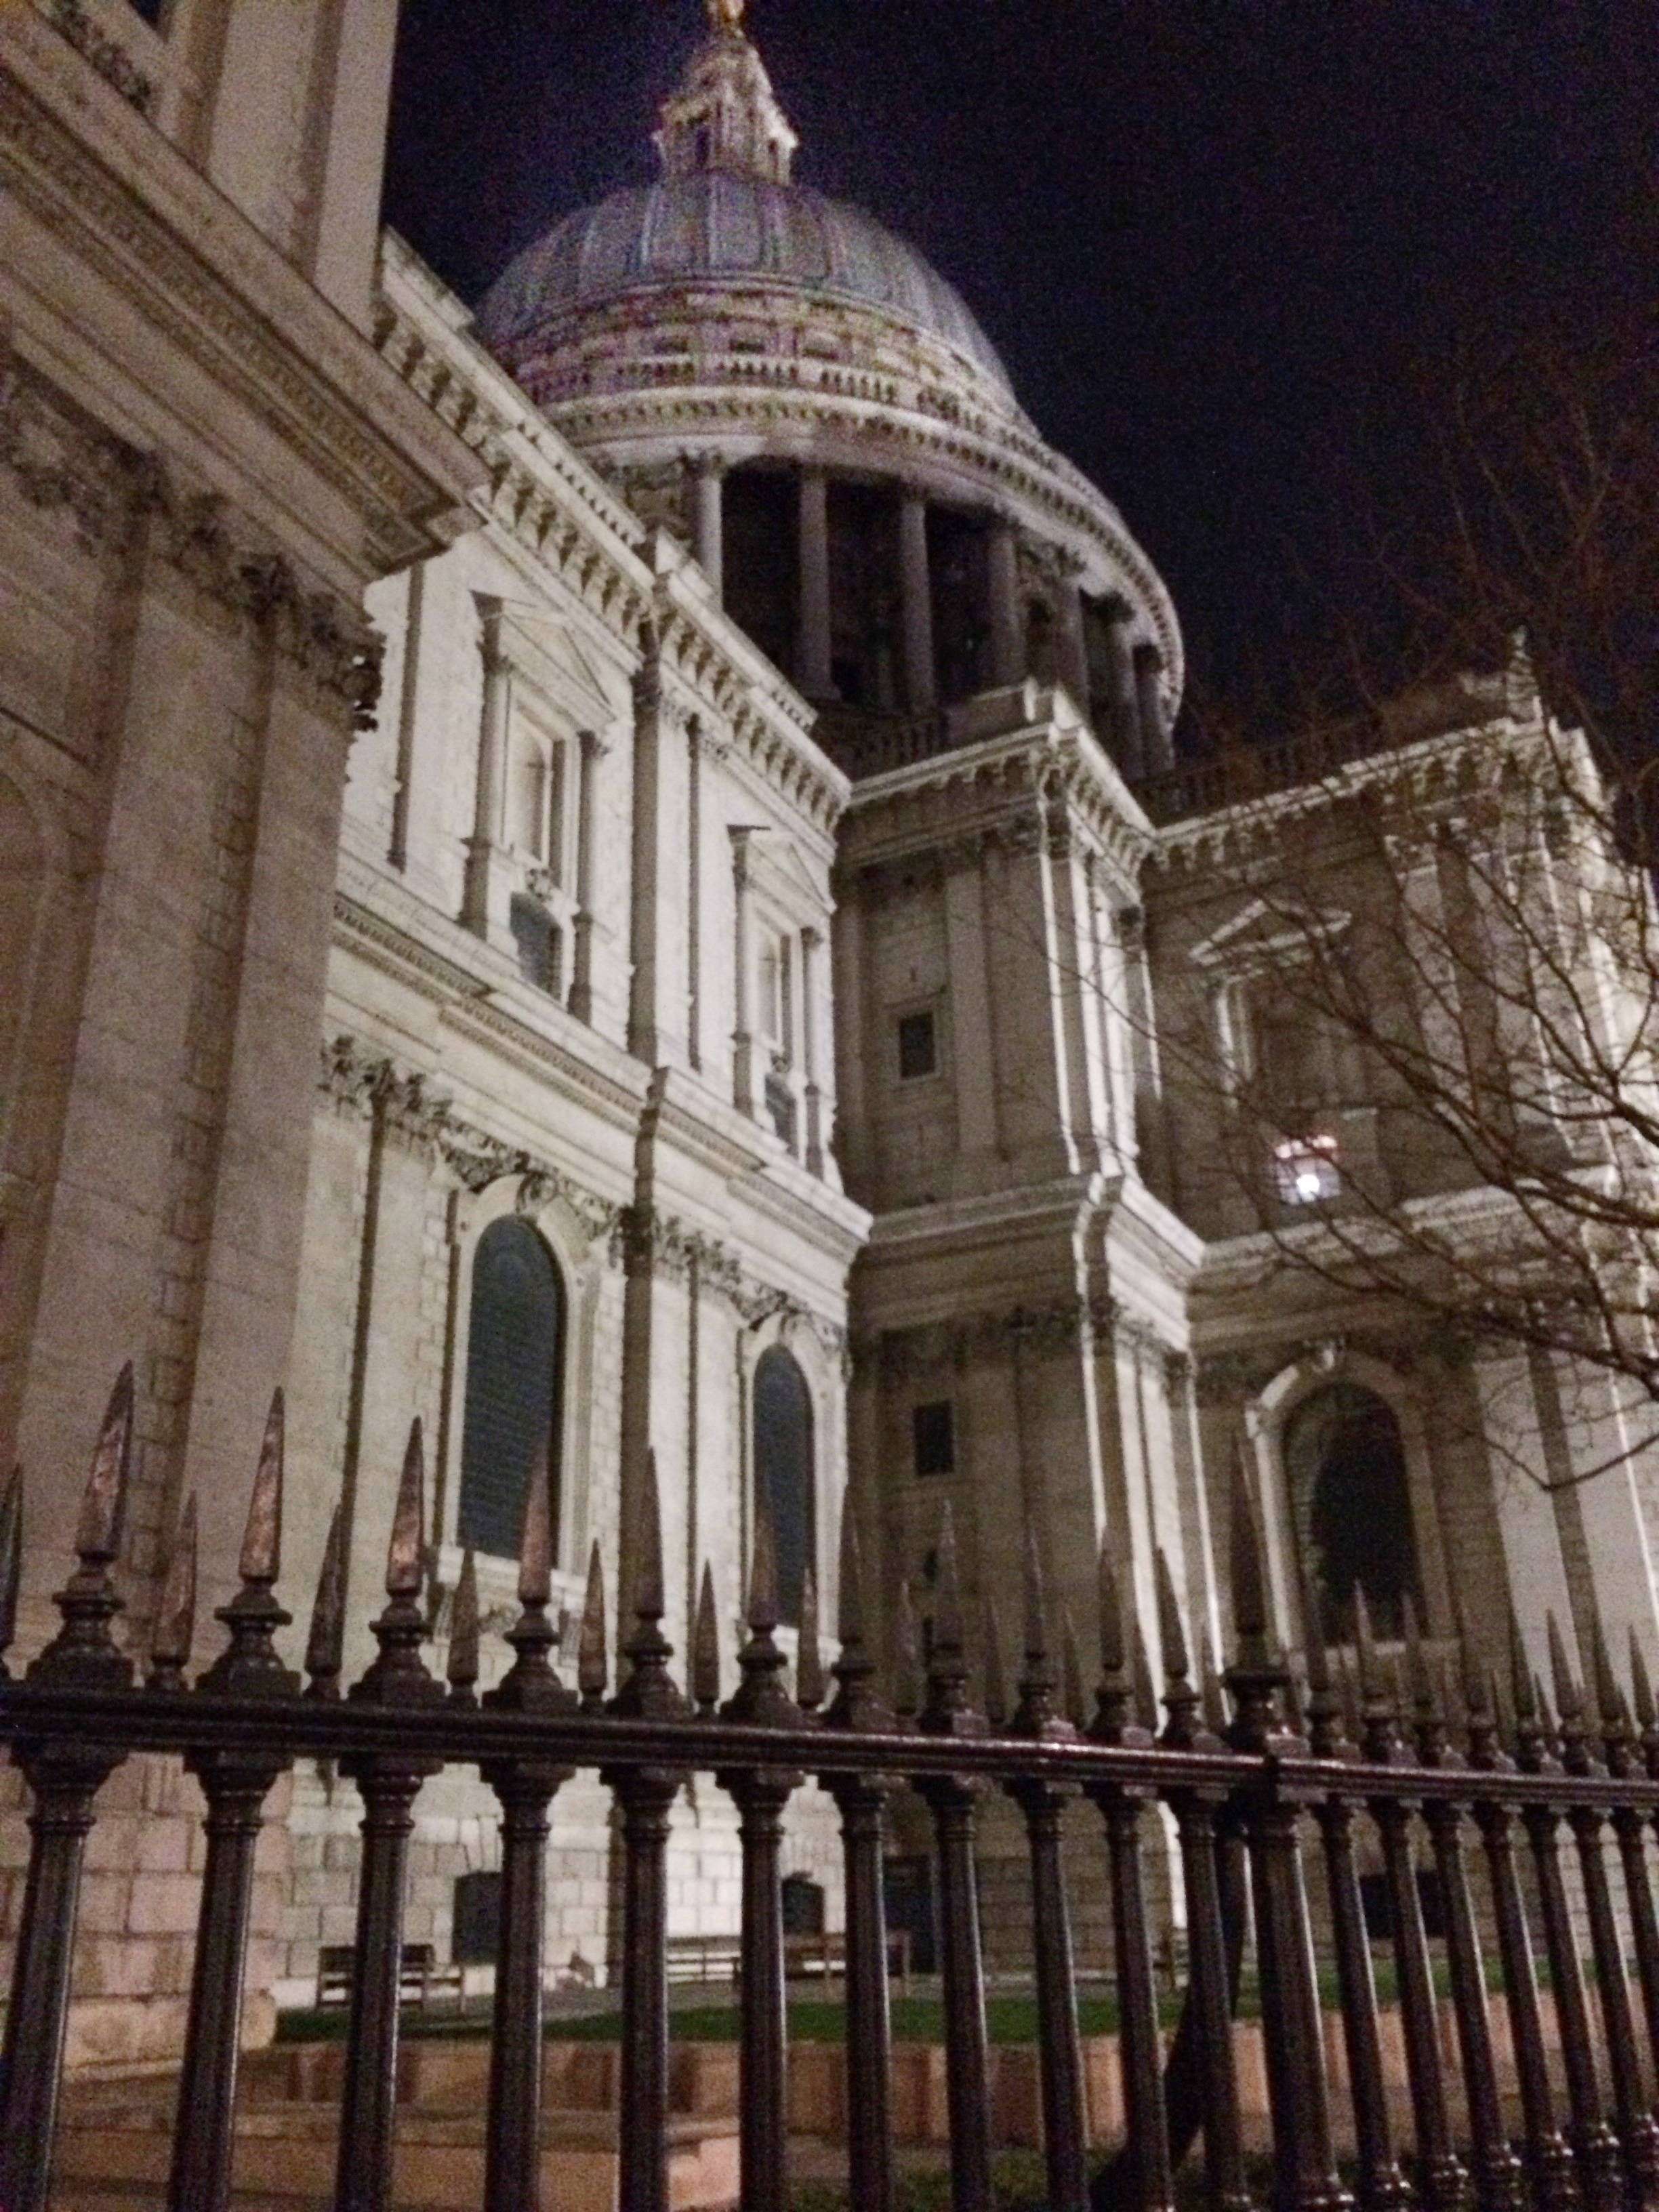 St Pauls in the evening